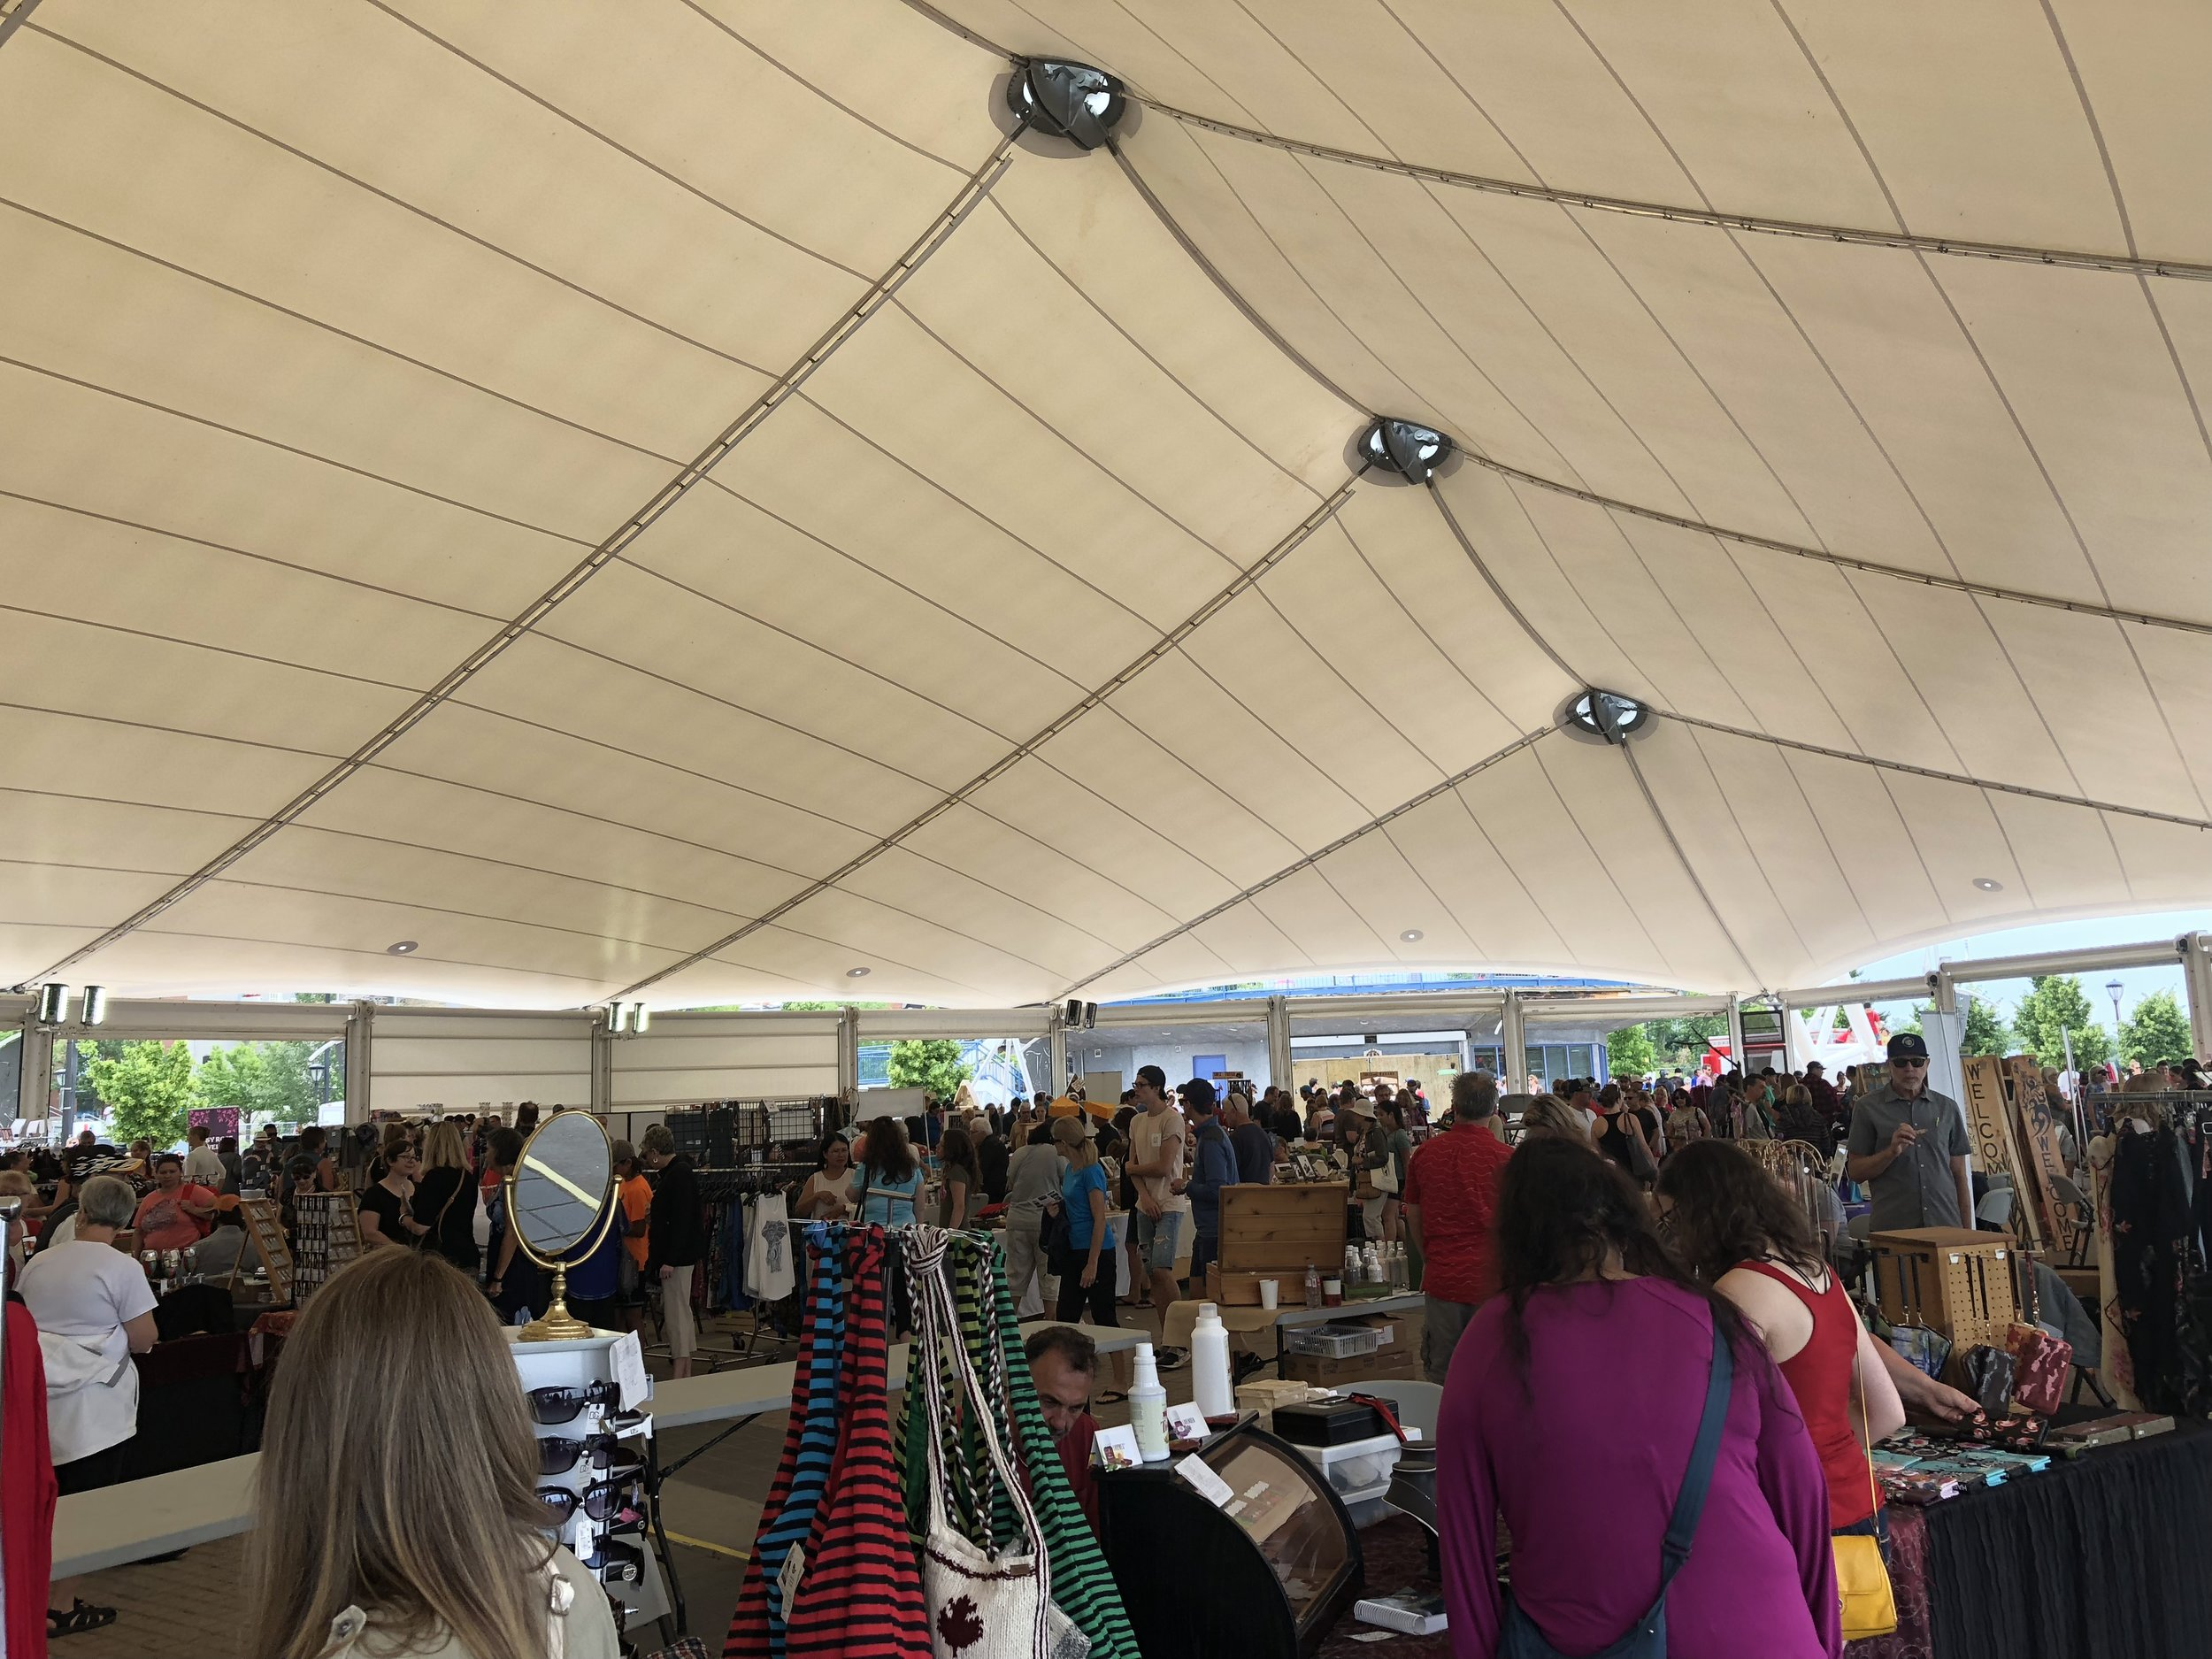 The Matiowski Farmer's Market at the Kenora Harbourfront